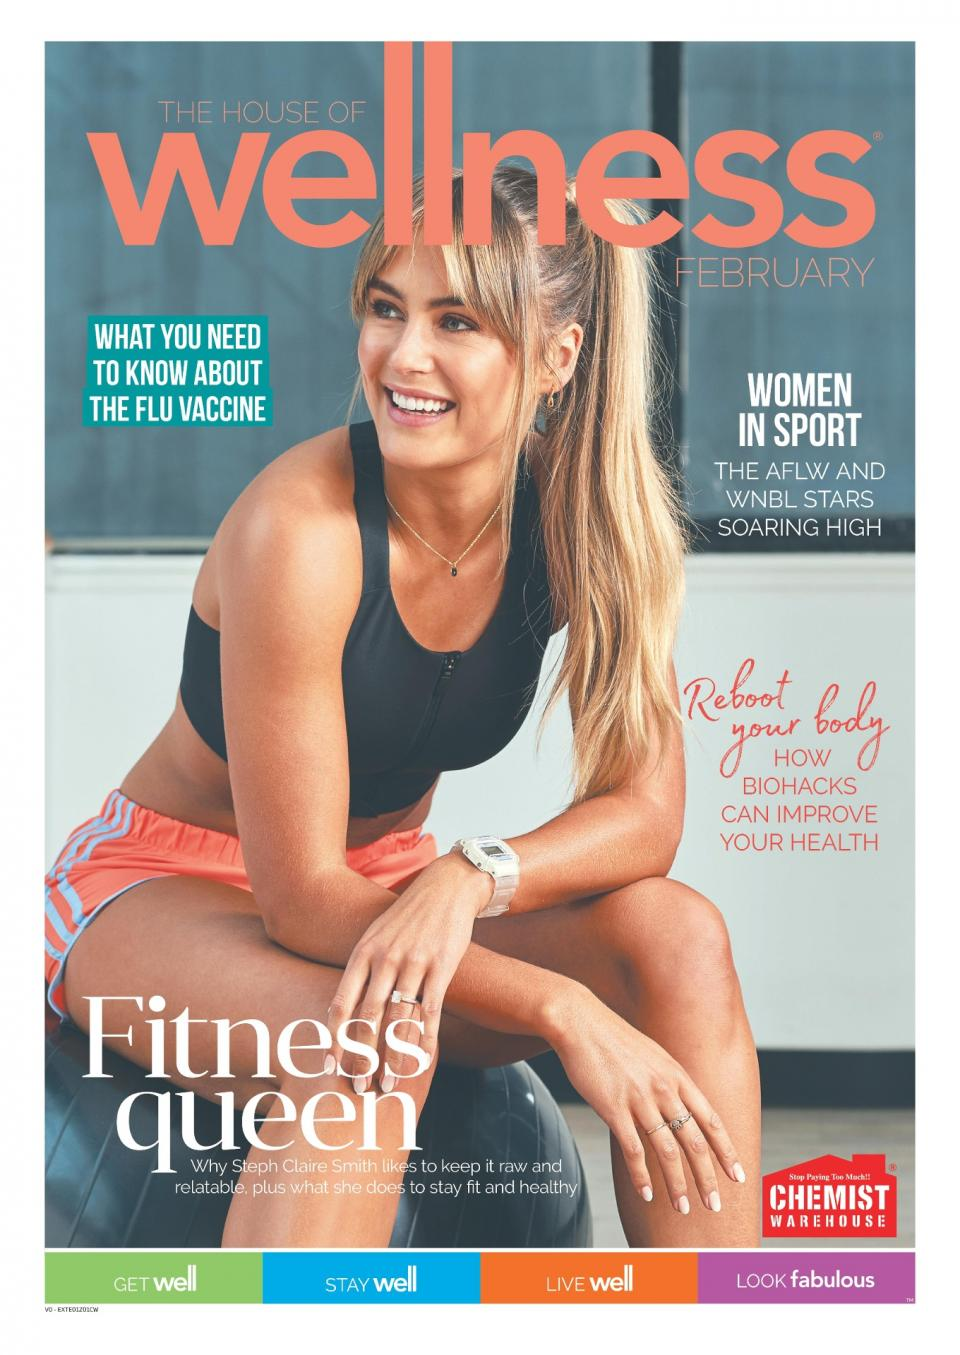 chemist warehouse wellness catalogue feb 2020